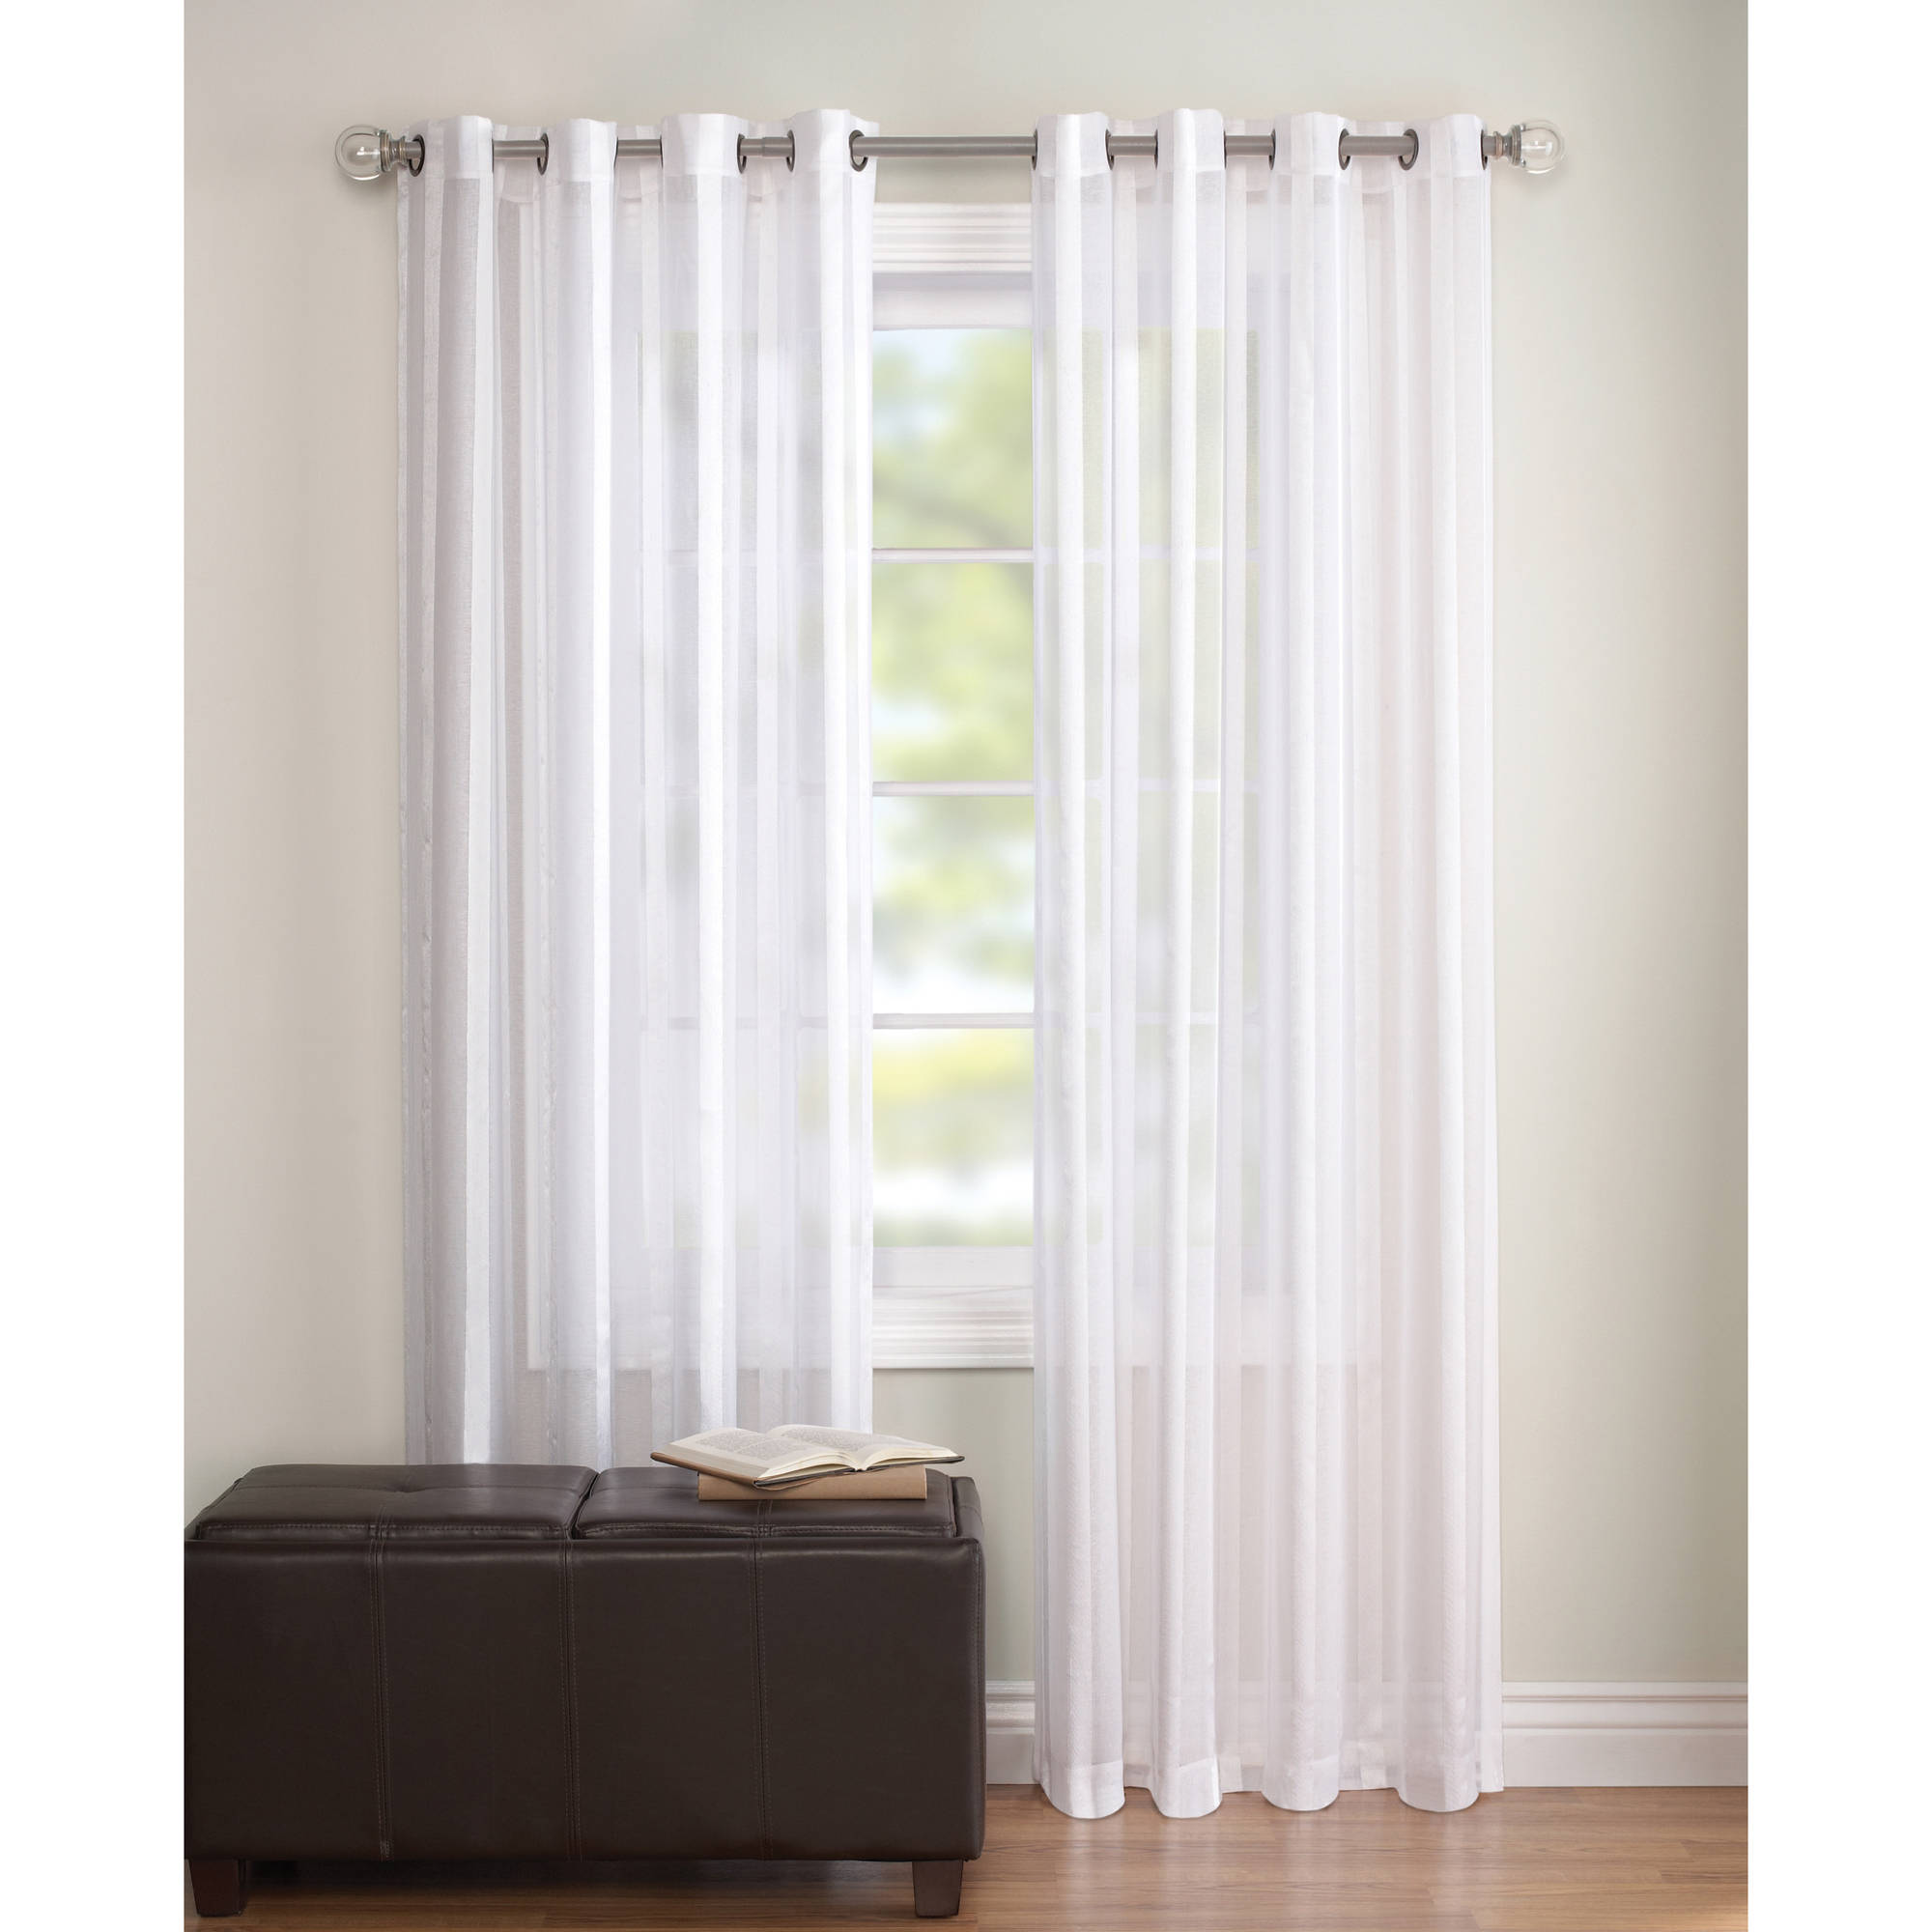 Better Homes & Gardens Semi-Sheer Grommet Curtain Panel, Bleached ...